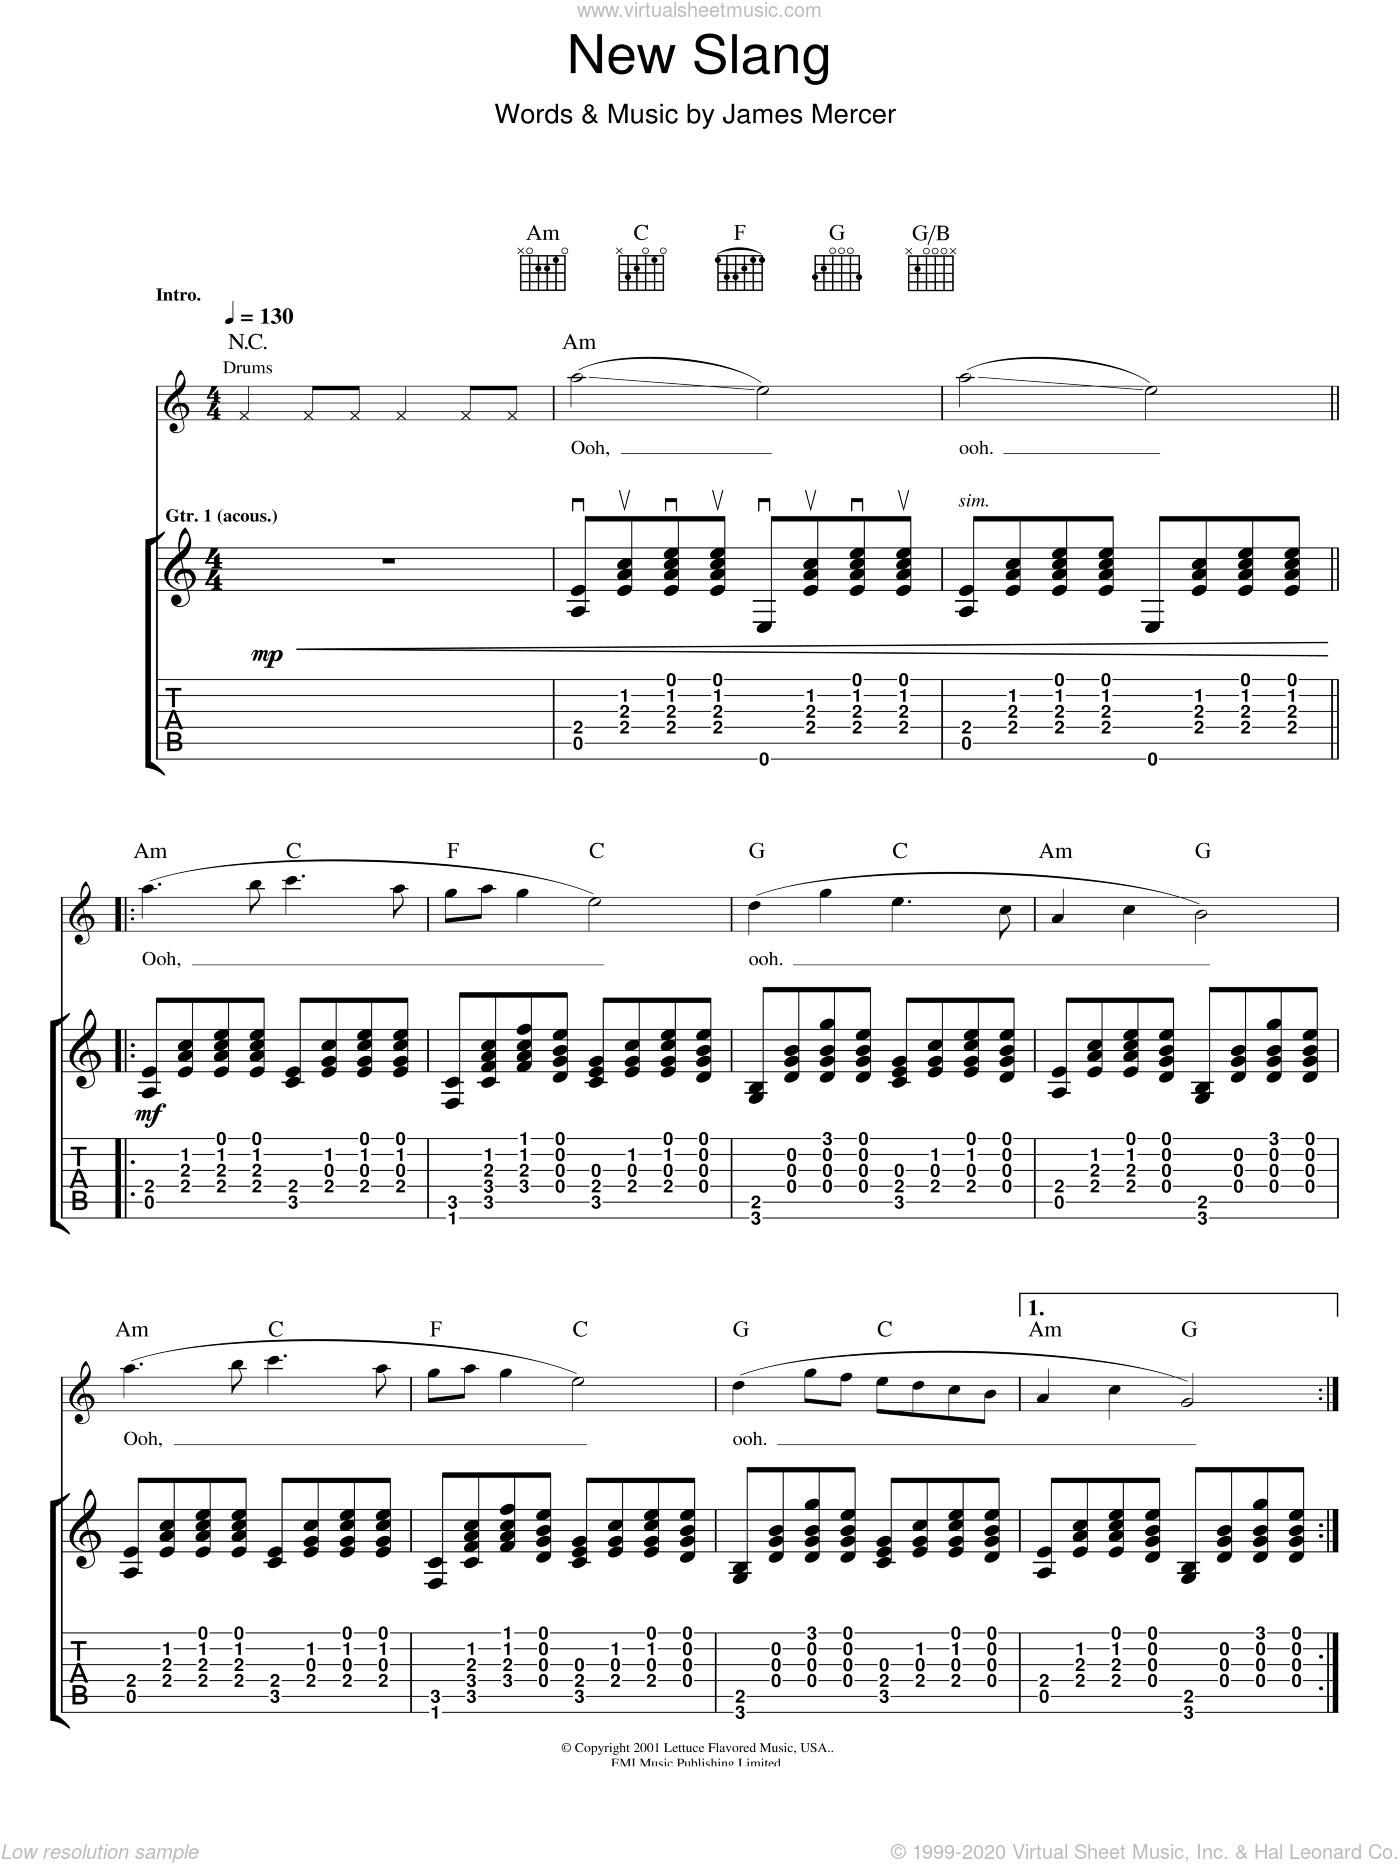 New Slang sheet music for guitar (tablature) by James Mercer. Score Image Preview.